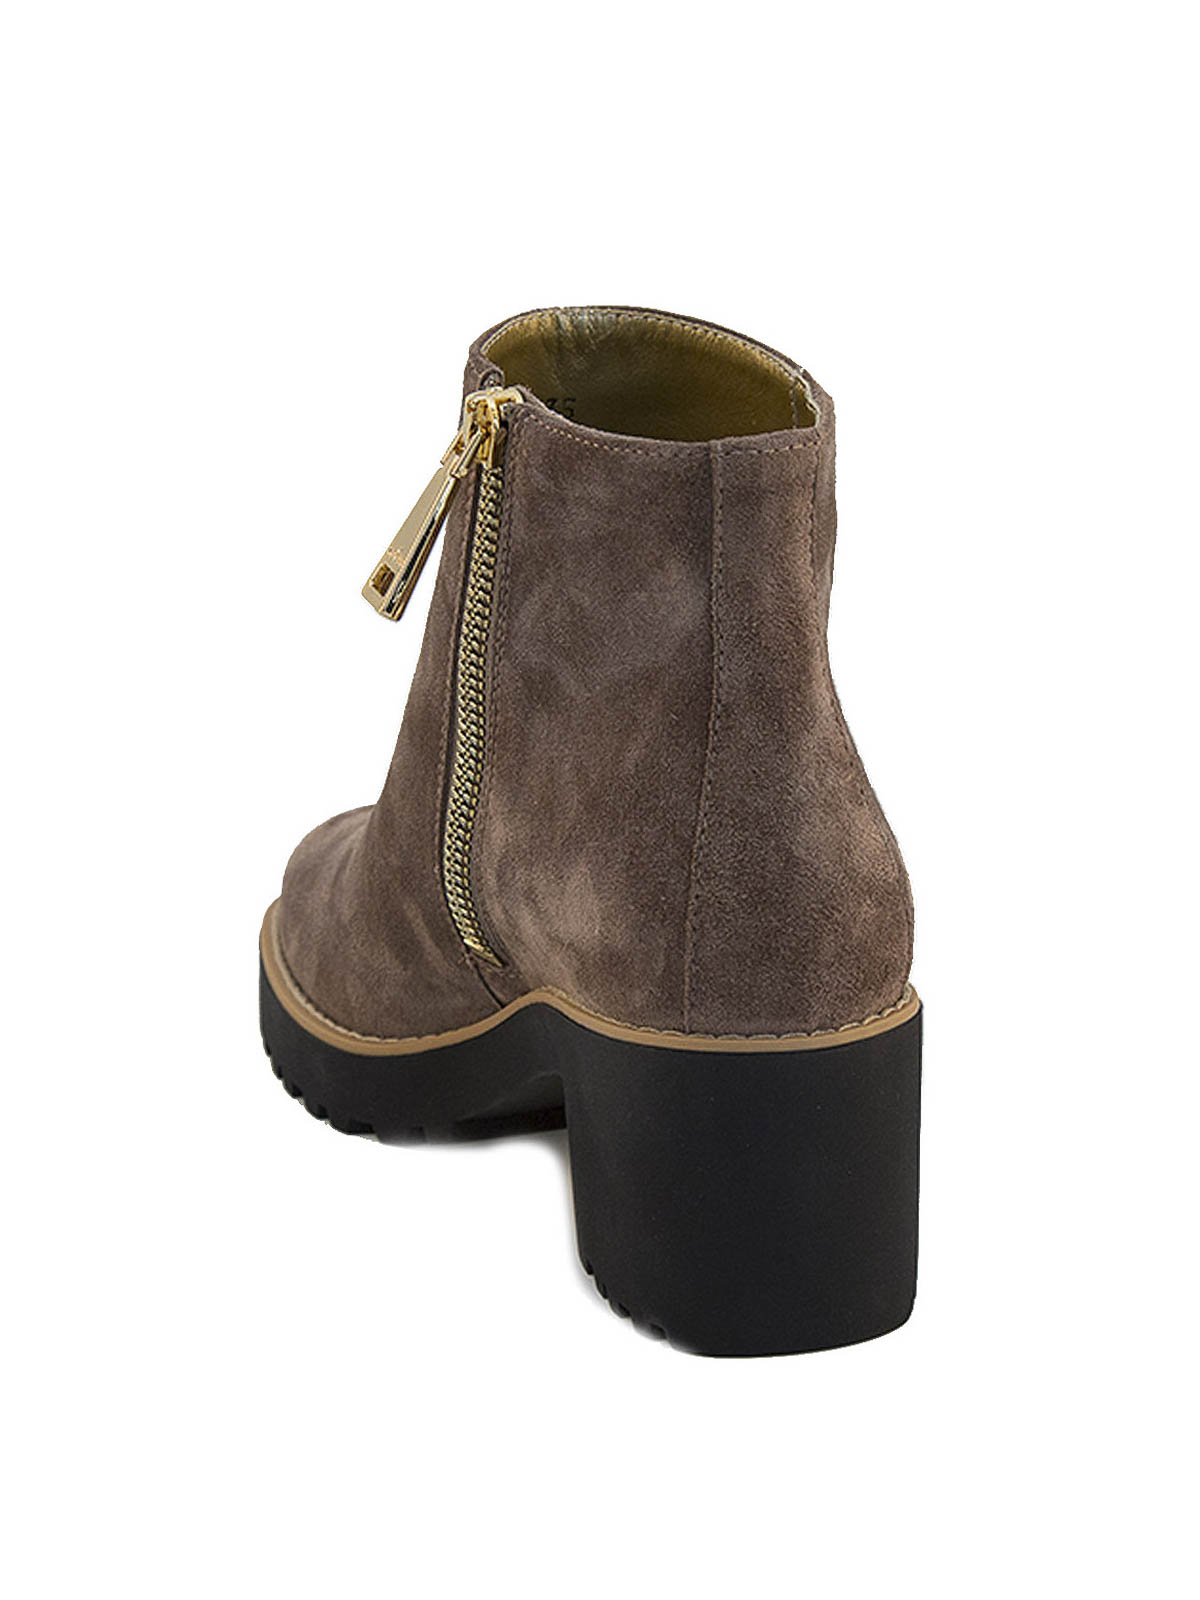 Route 277 ankle boots by Hogan - ankle boots  287c6f1cf0b